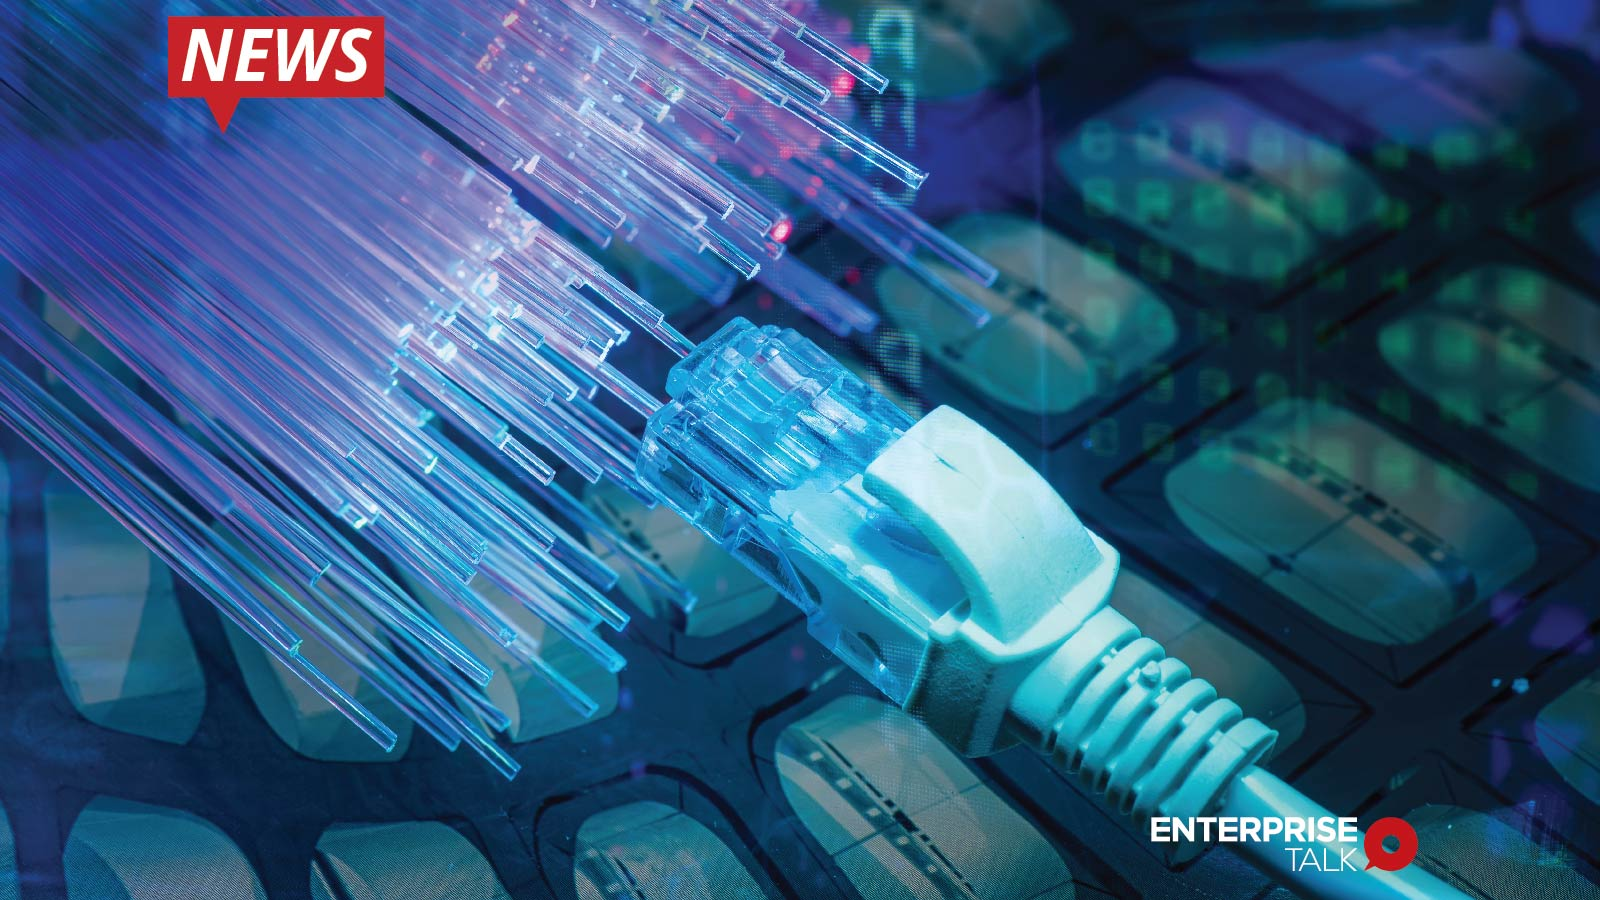 Rise Broadband Partners with Mimosa to Deploy High-Speed Broadband